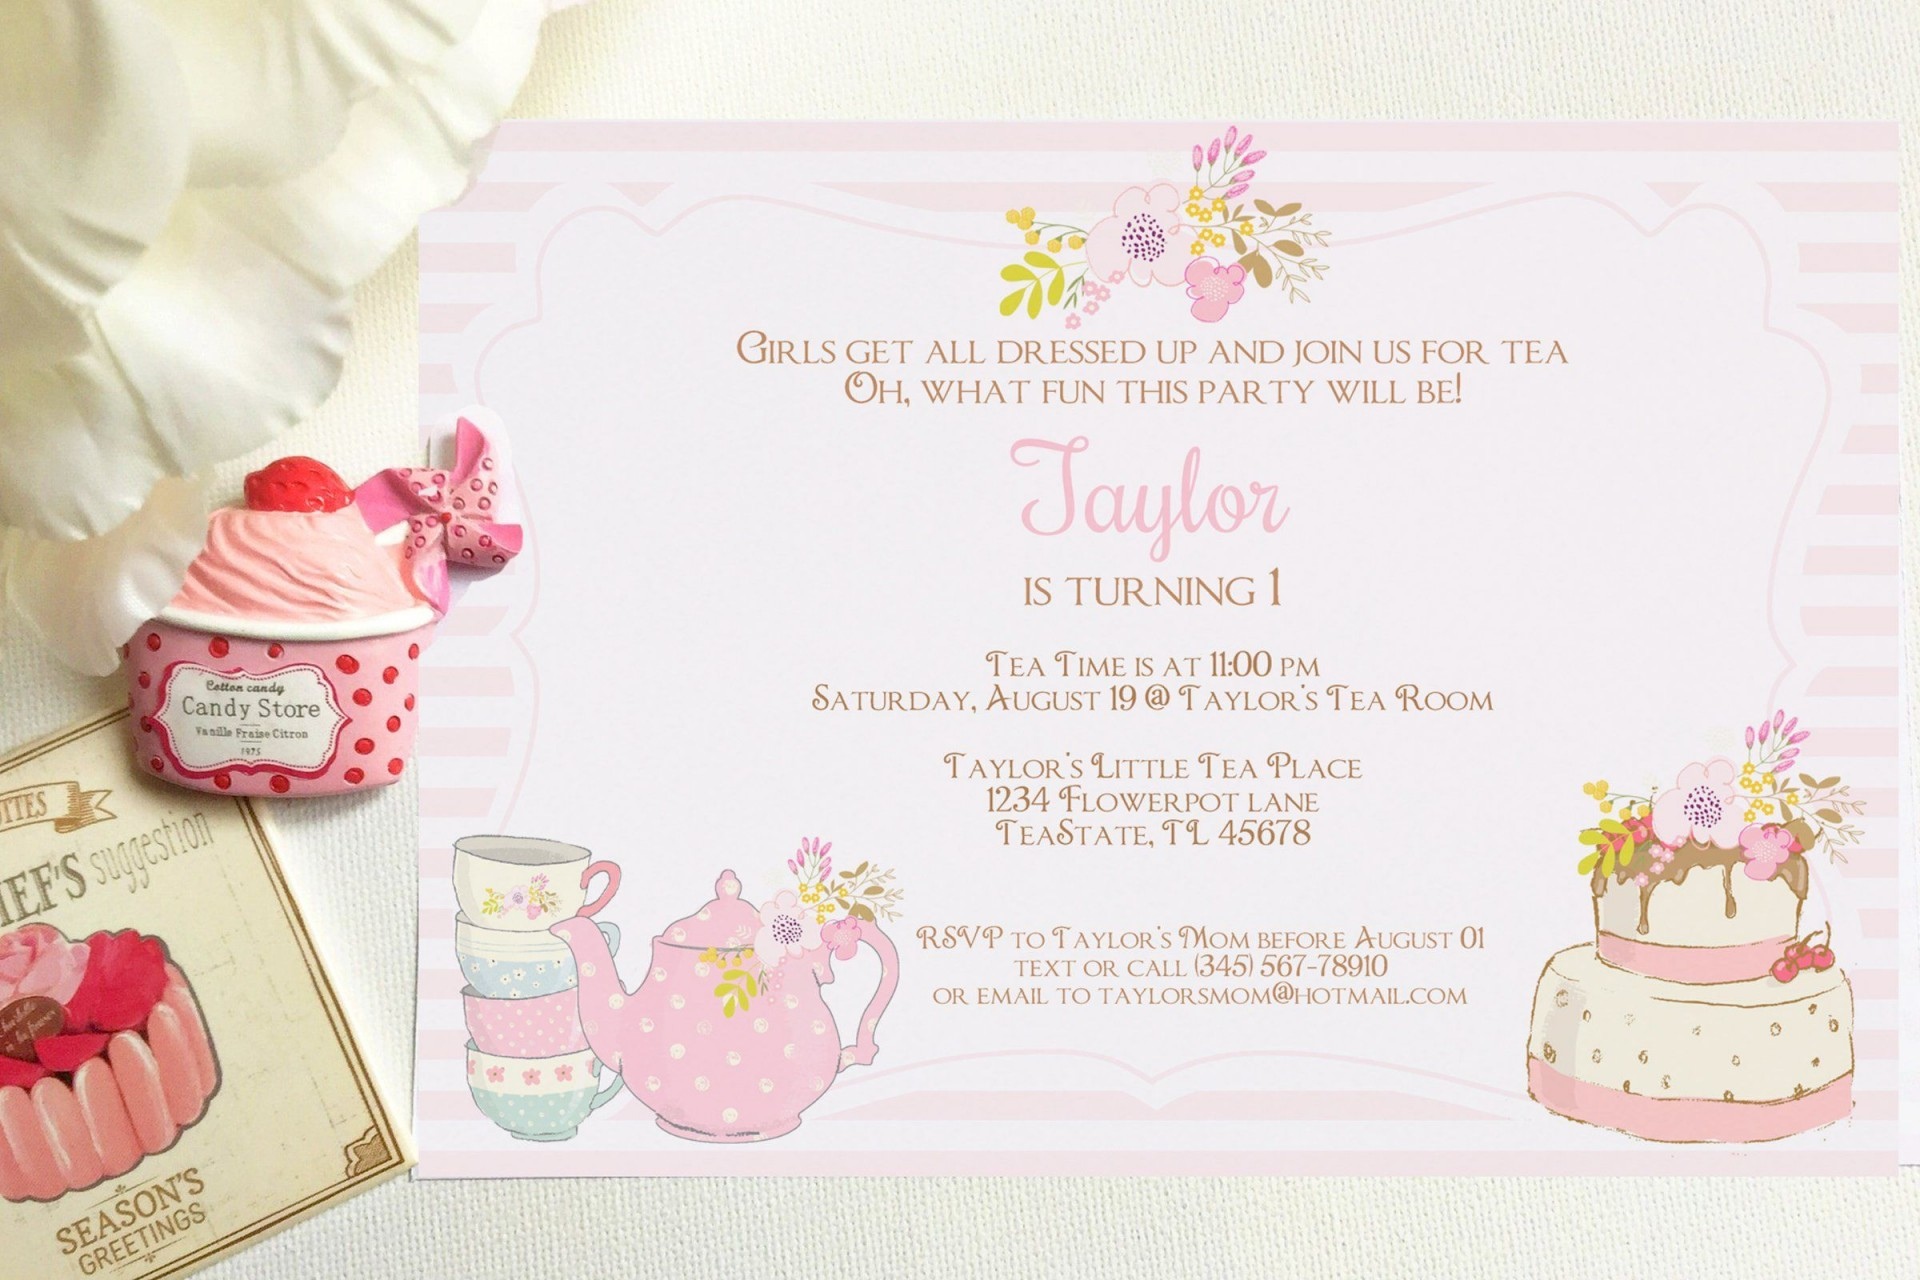 008 Outstanding Tea Party Invitation Template High Definition  Vintage Free Editable Card Pdf1920